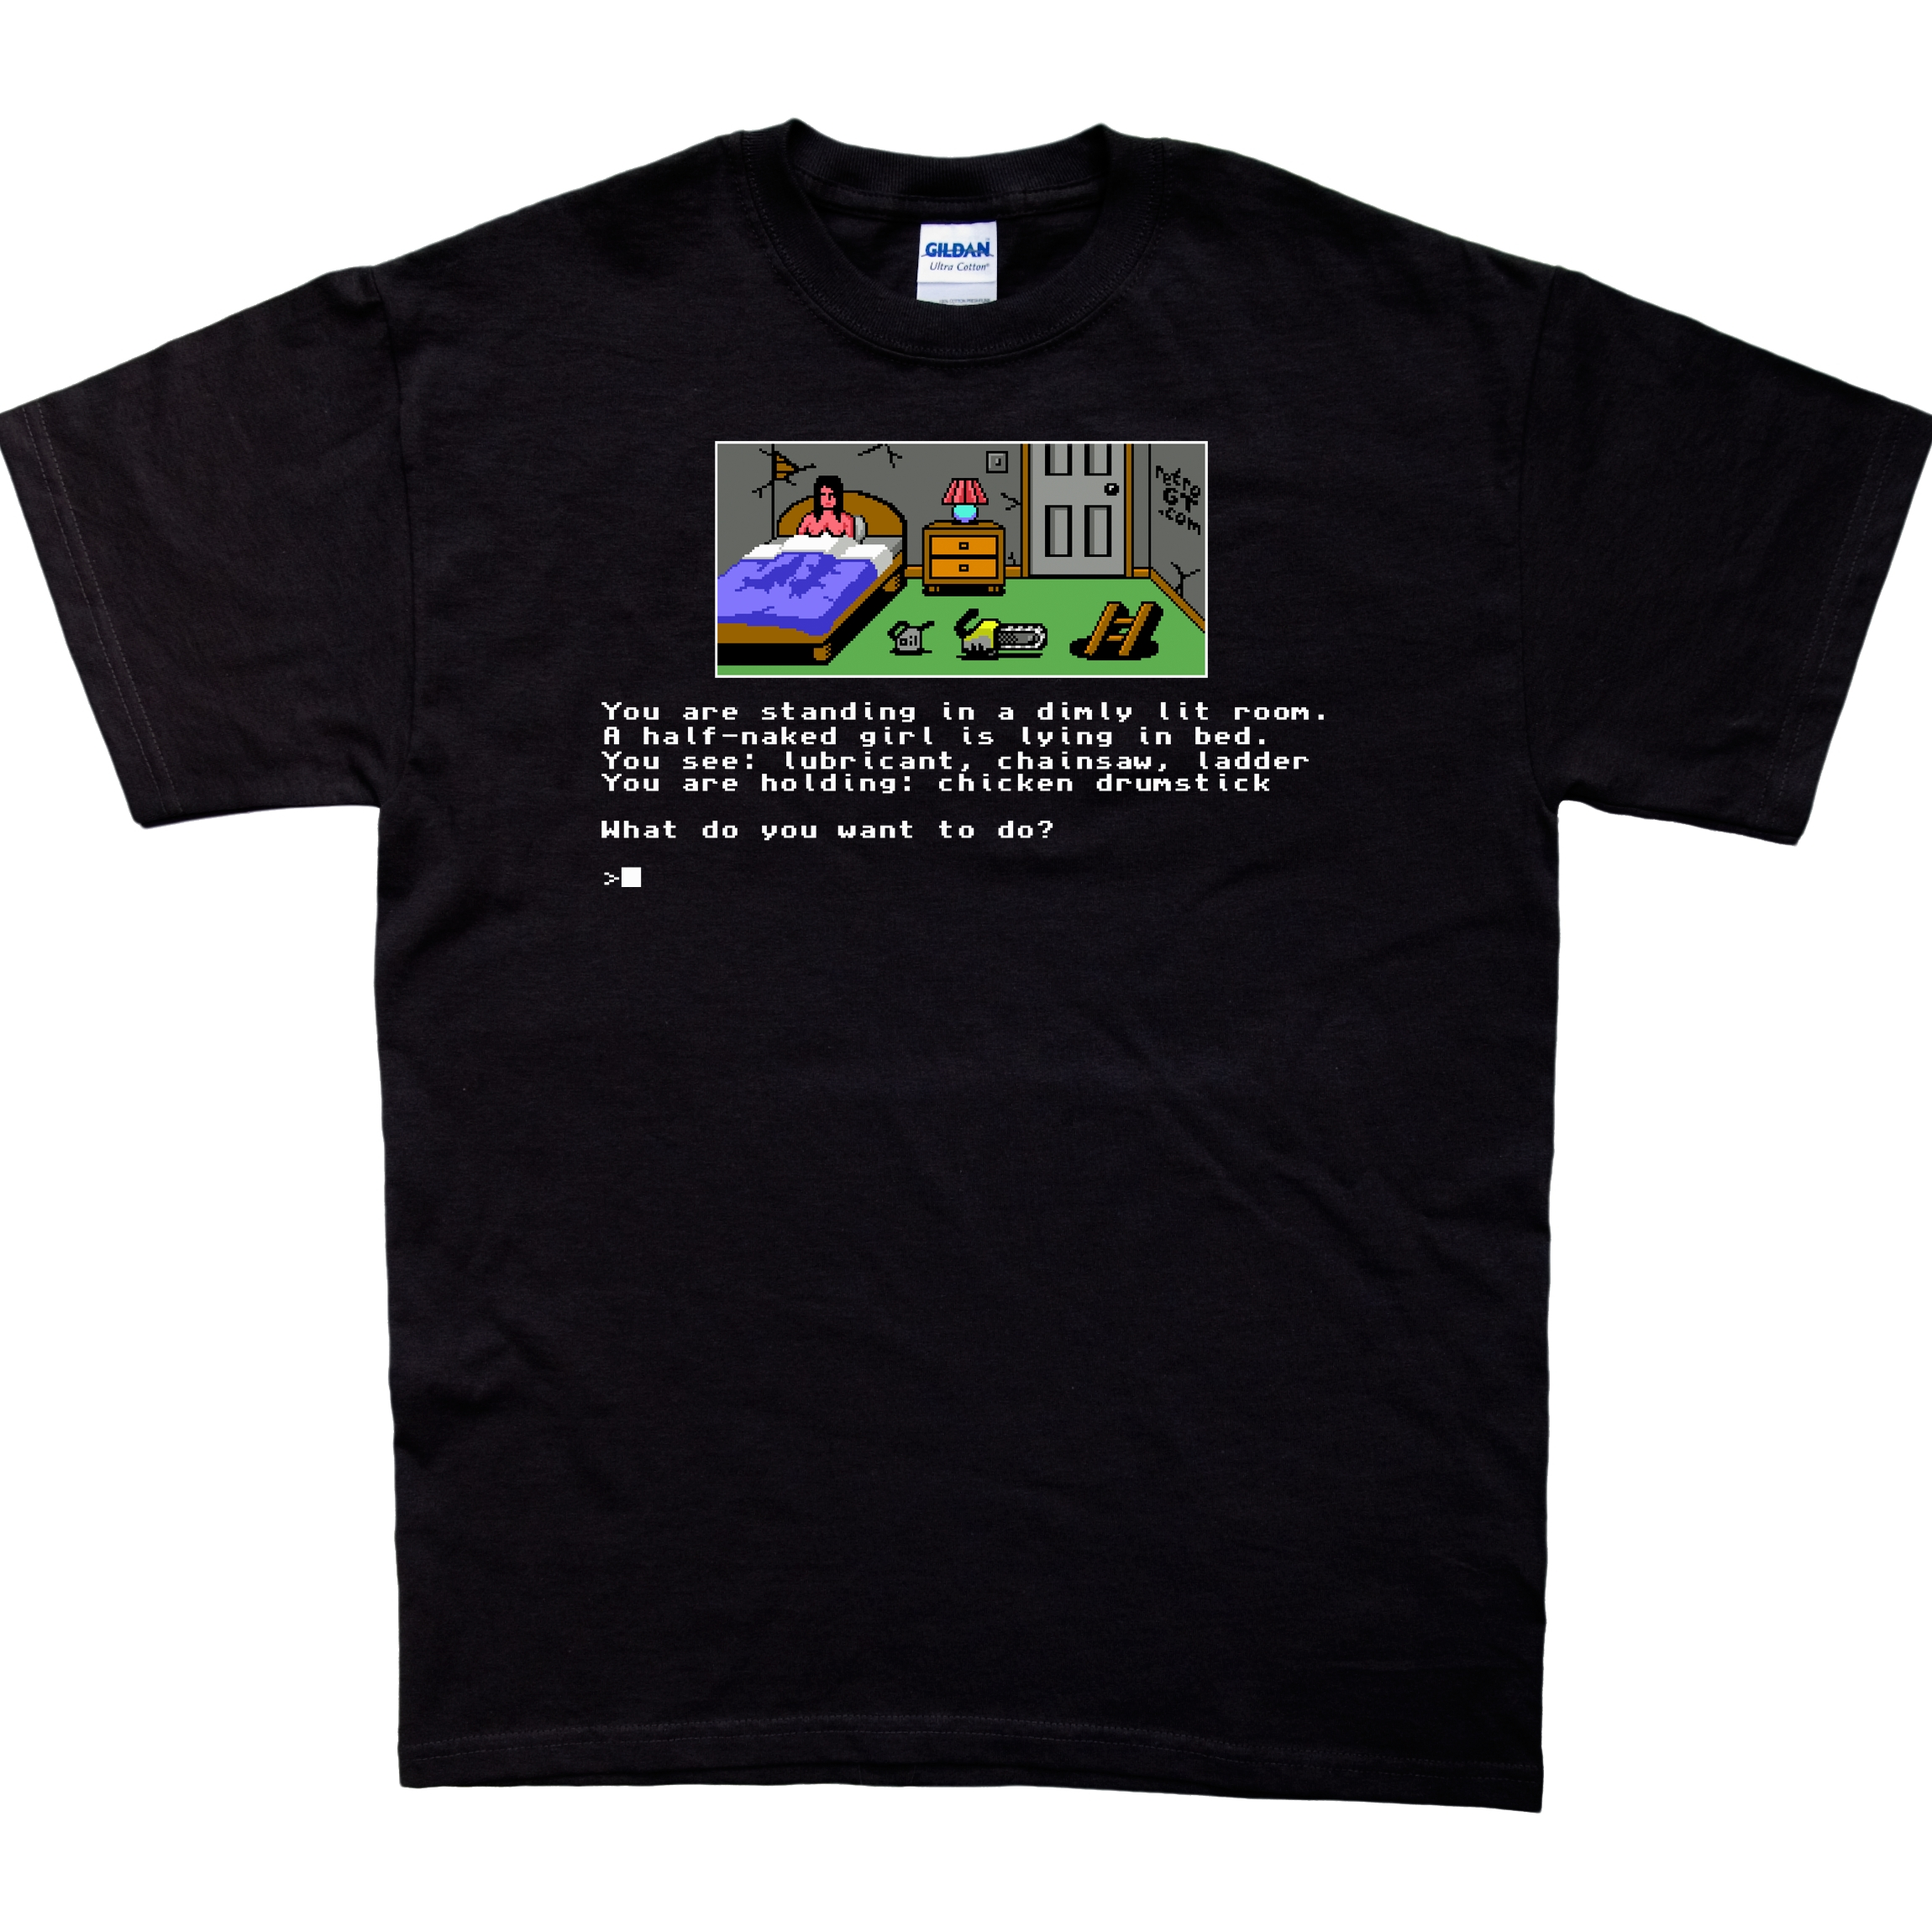 Photograph: Text Adventure T-Shirt